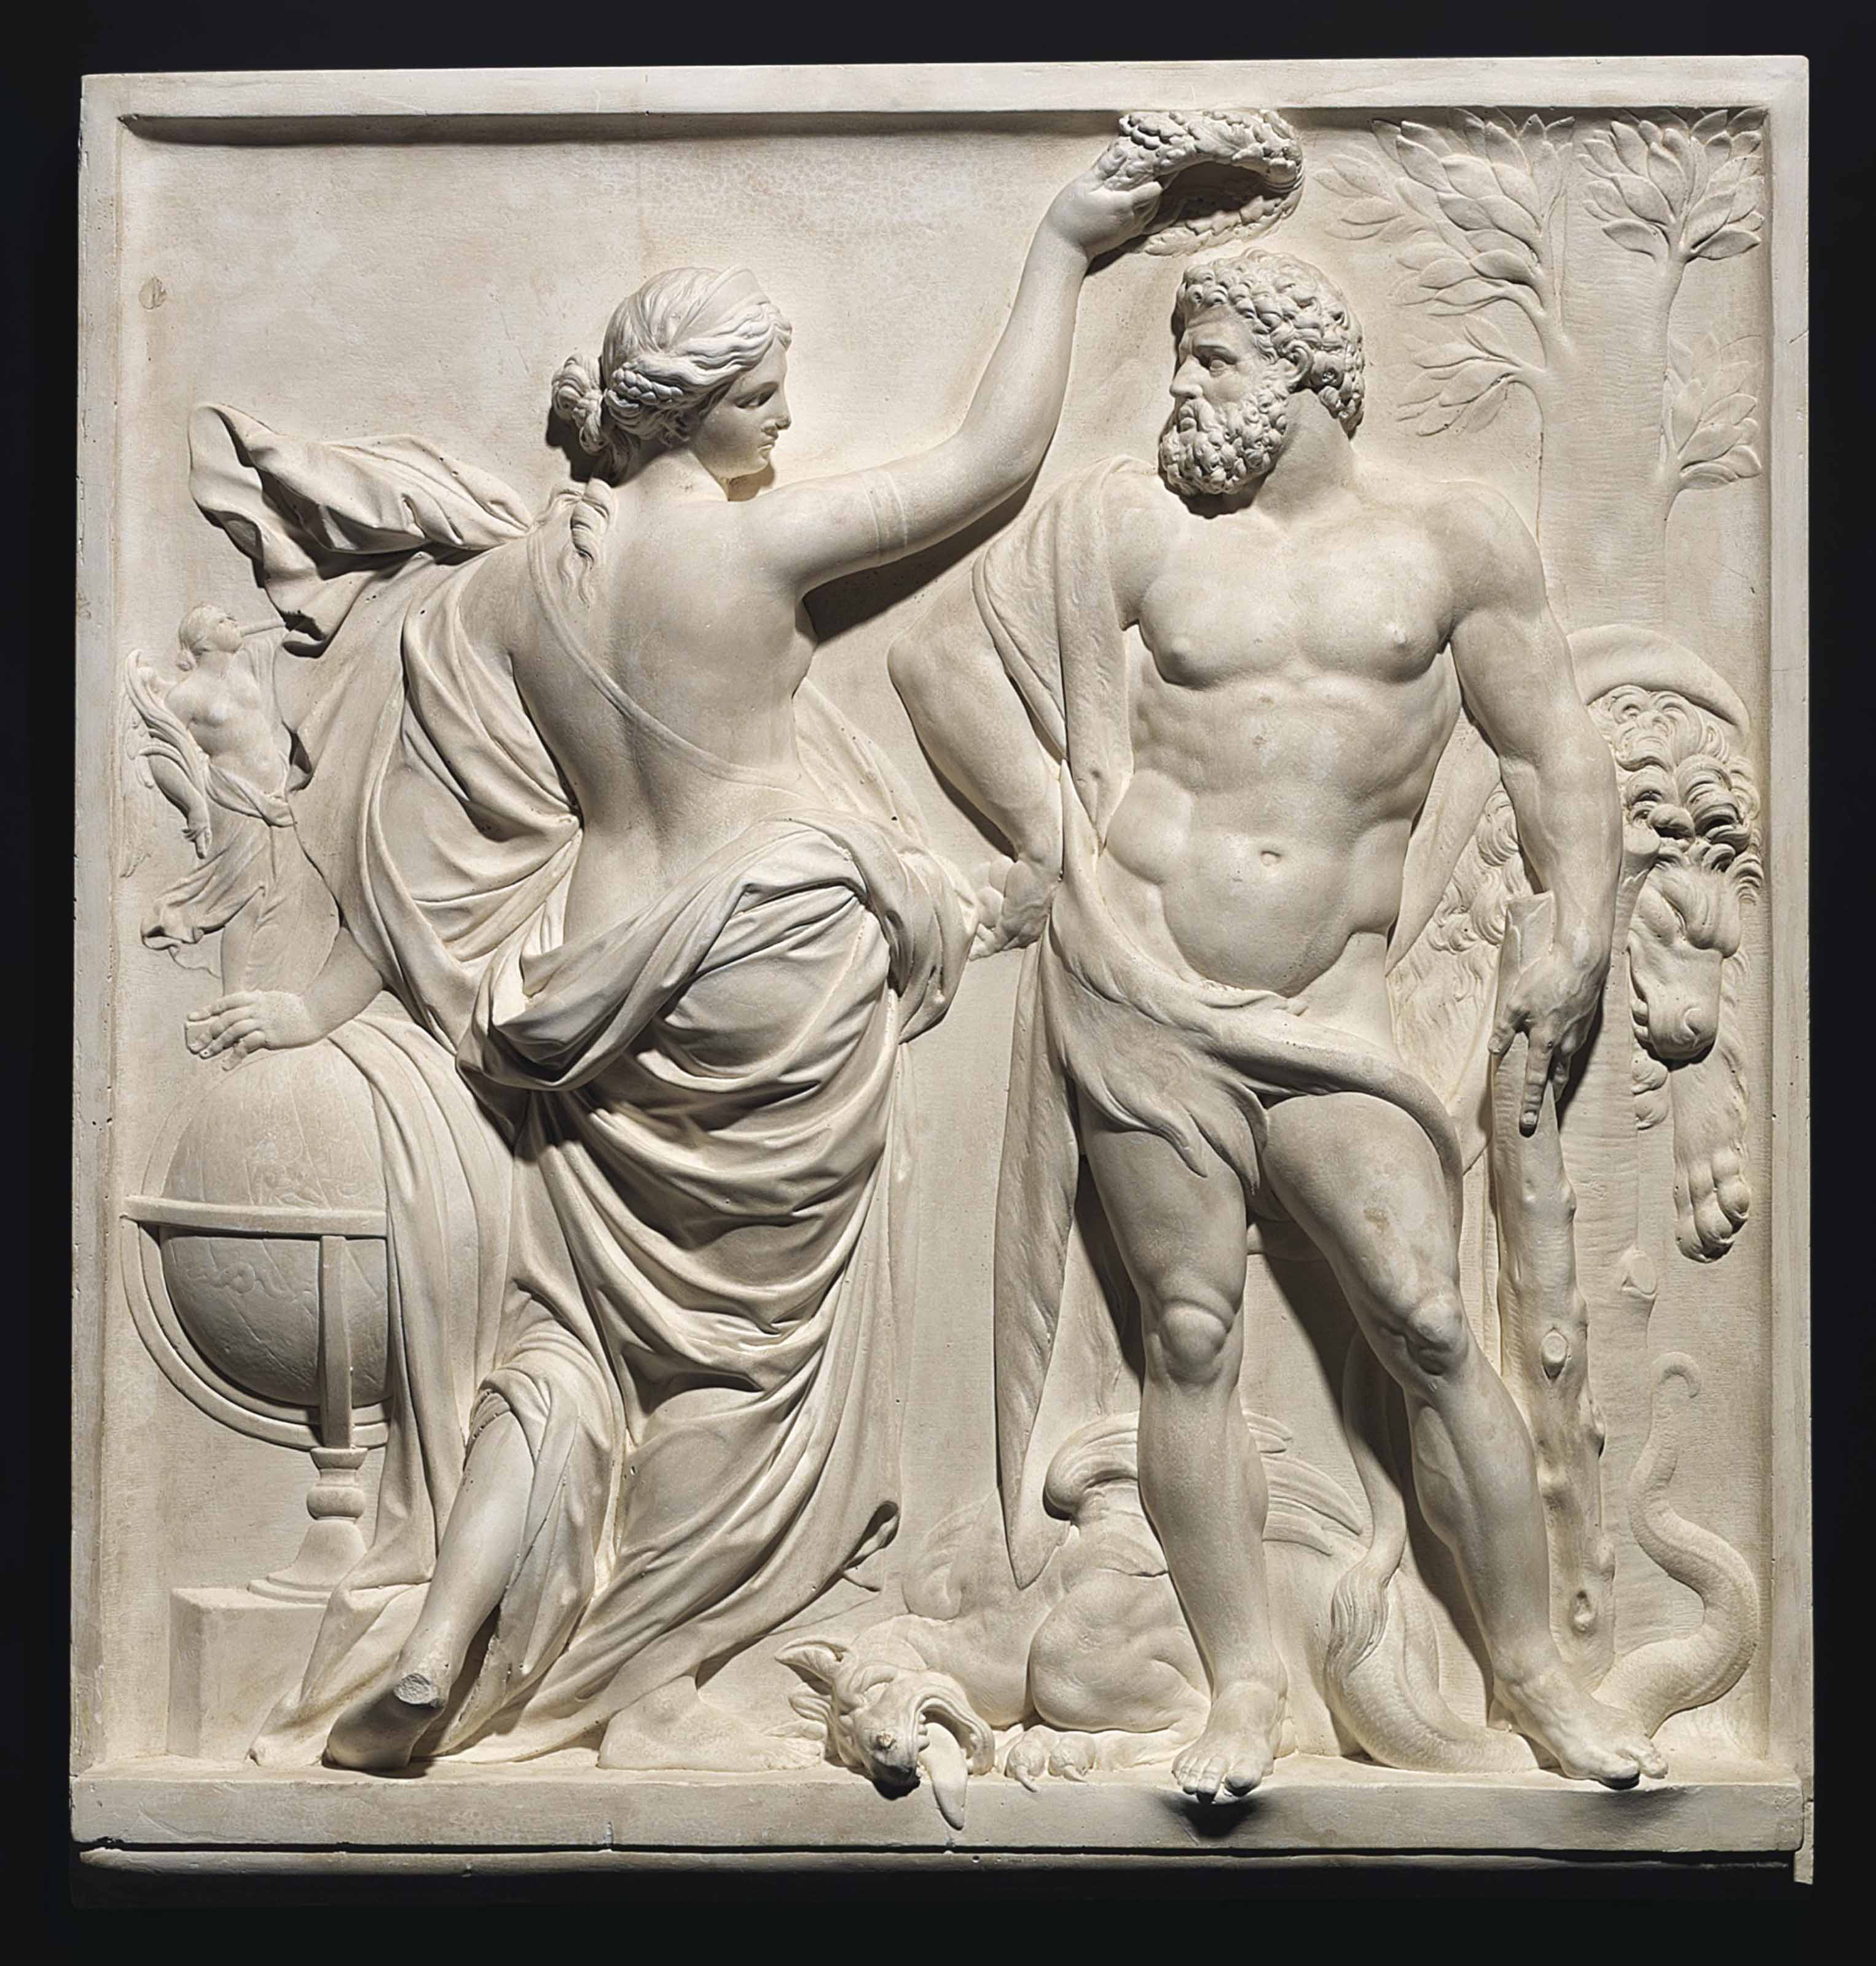 A PLASTER RELIEF OF HERCULES CROWNED BY GLORY